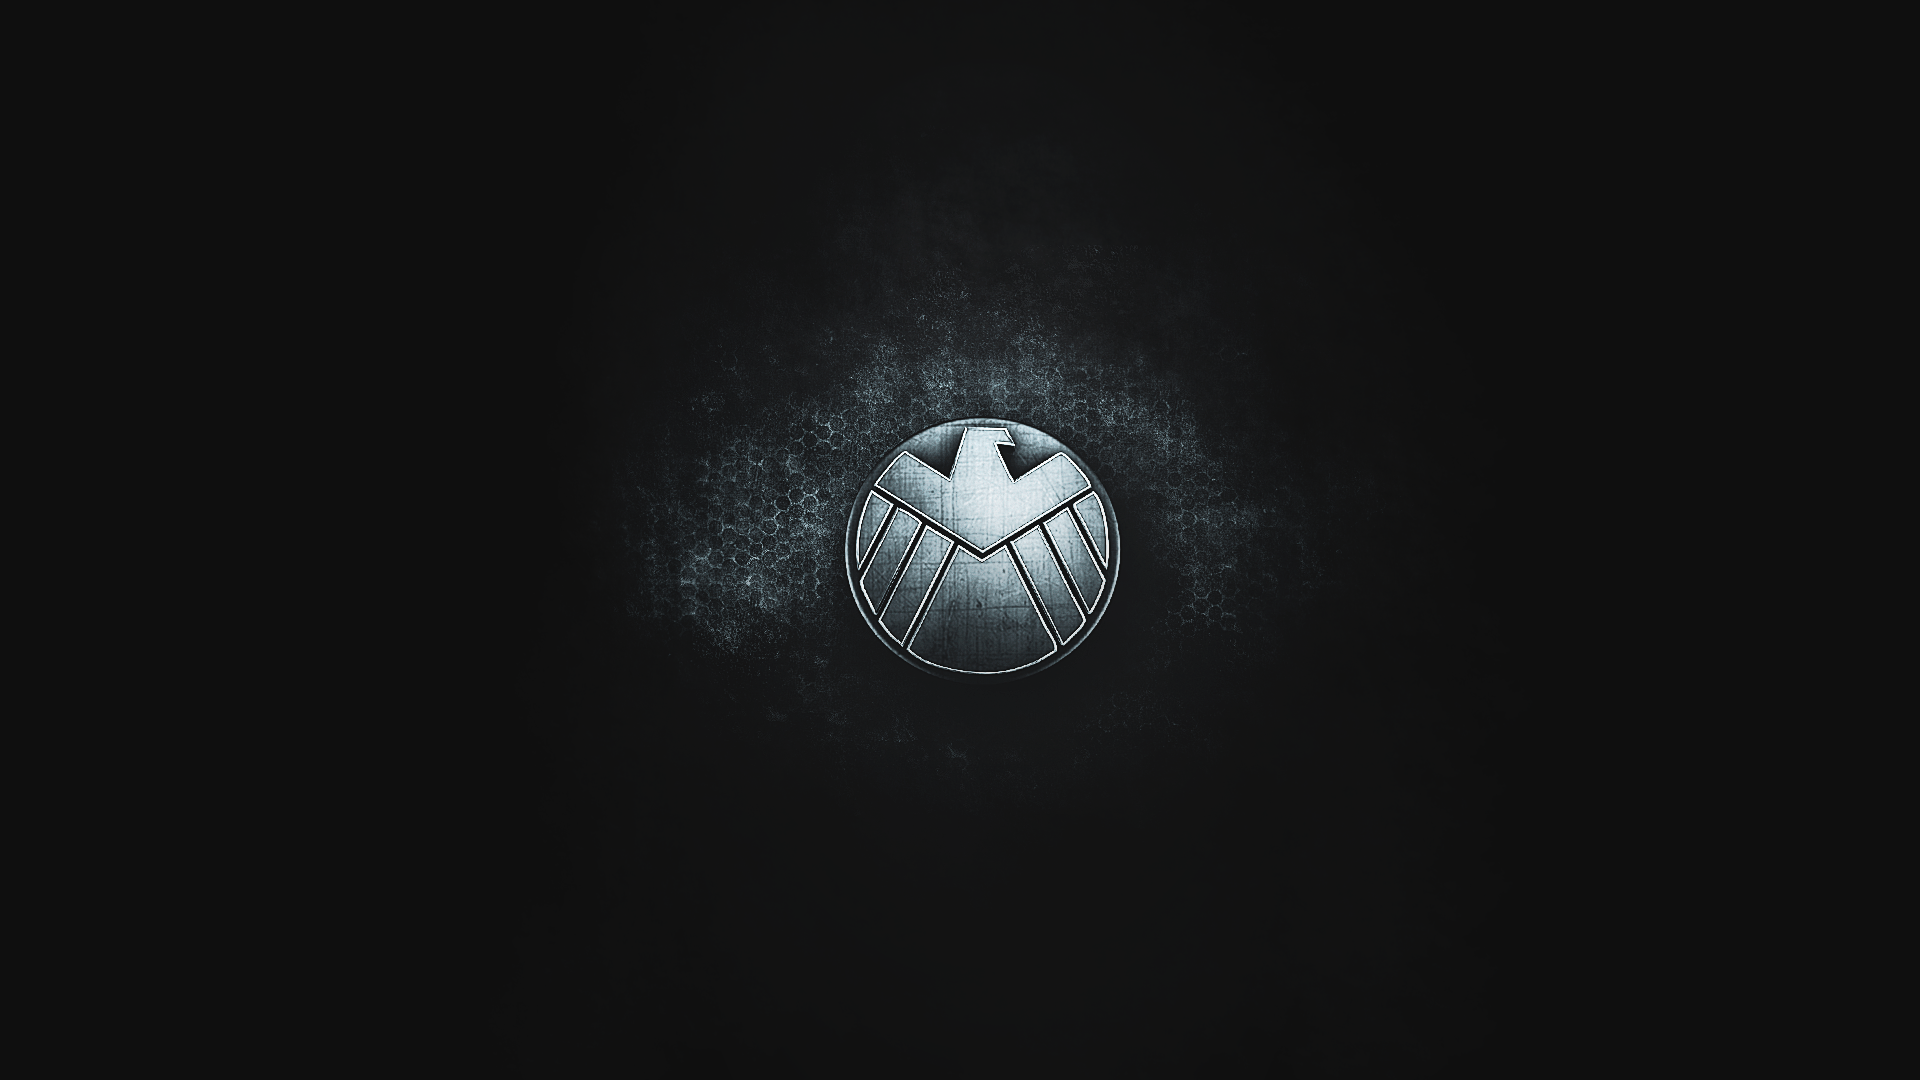 Free Download Displaying 17 Images For Agents Of Shield Logo Png